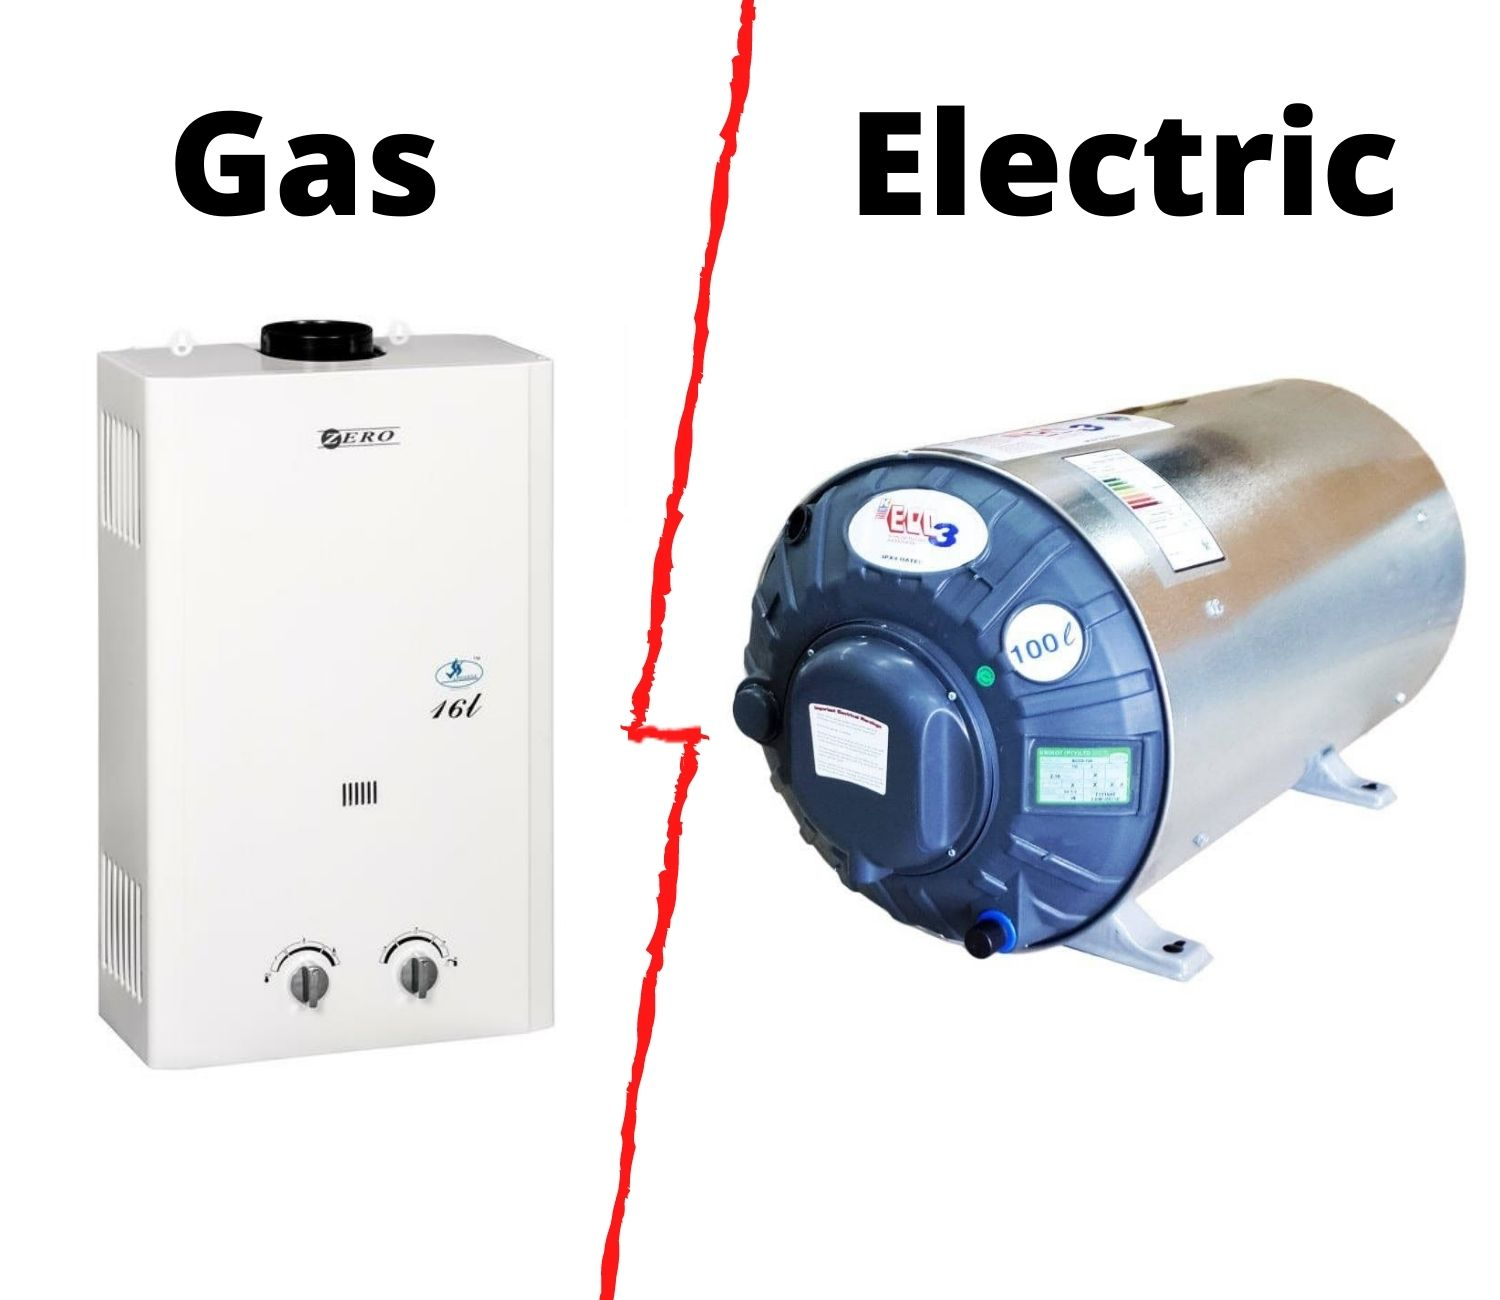 which geyser is best, gas or electric